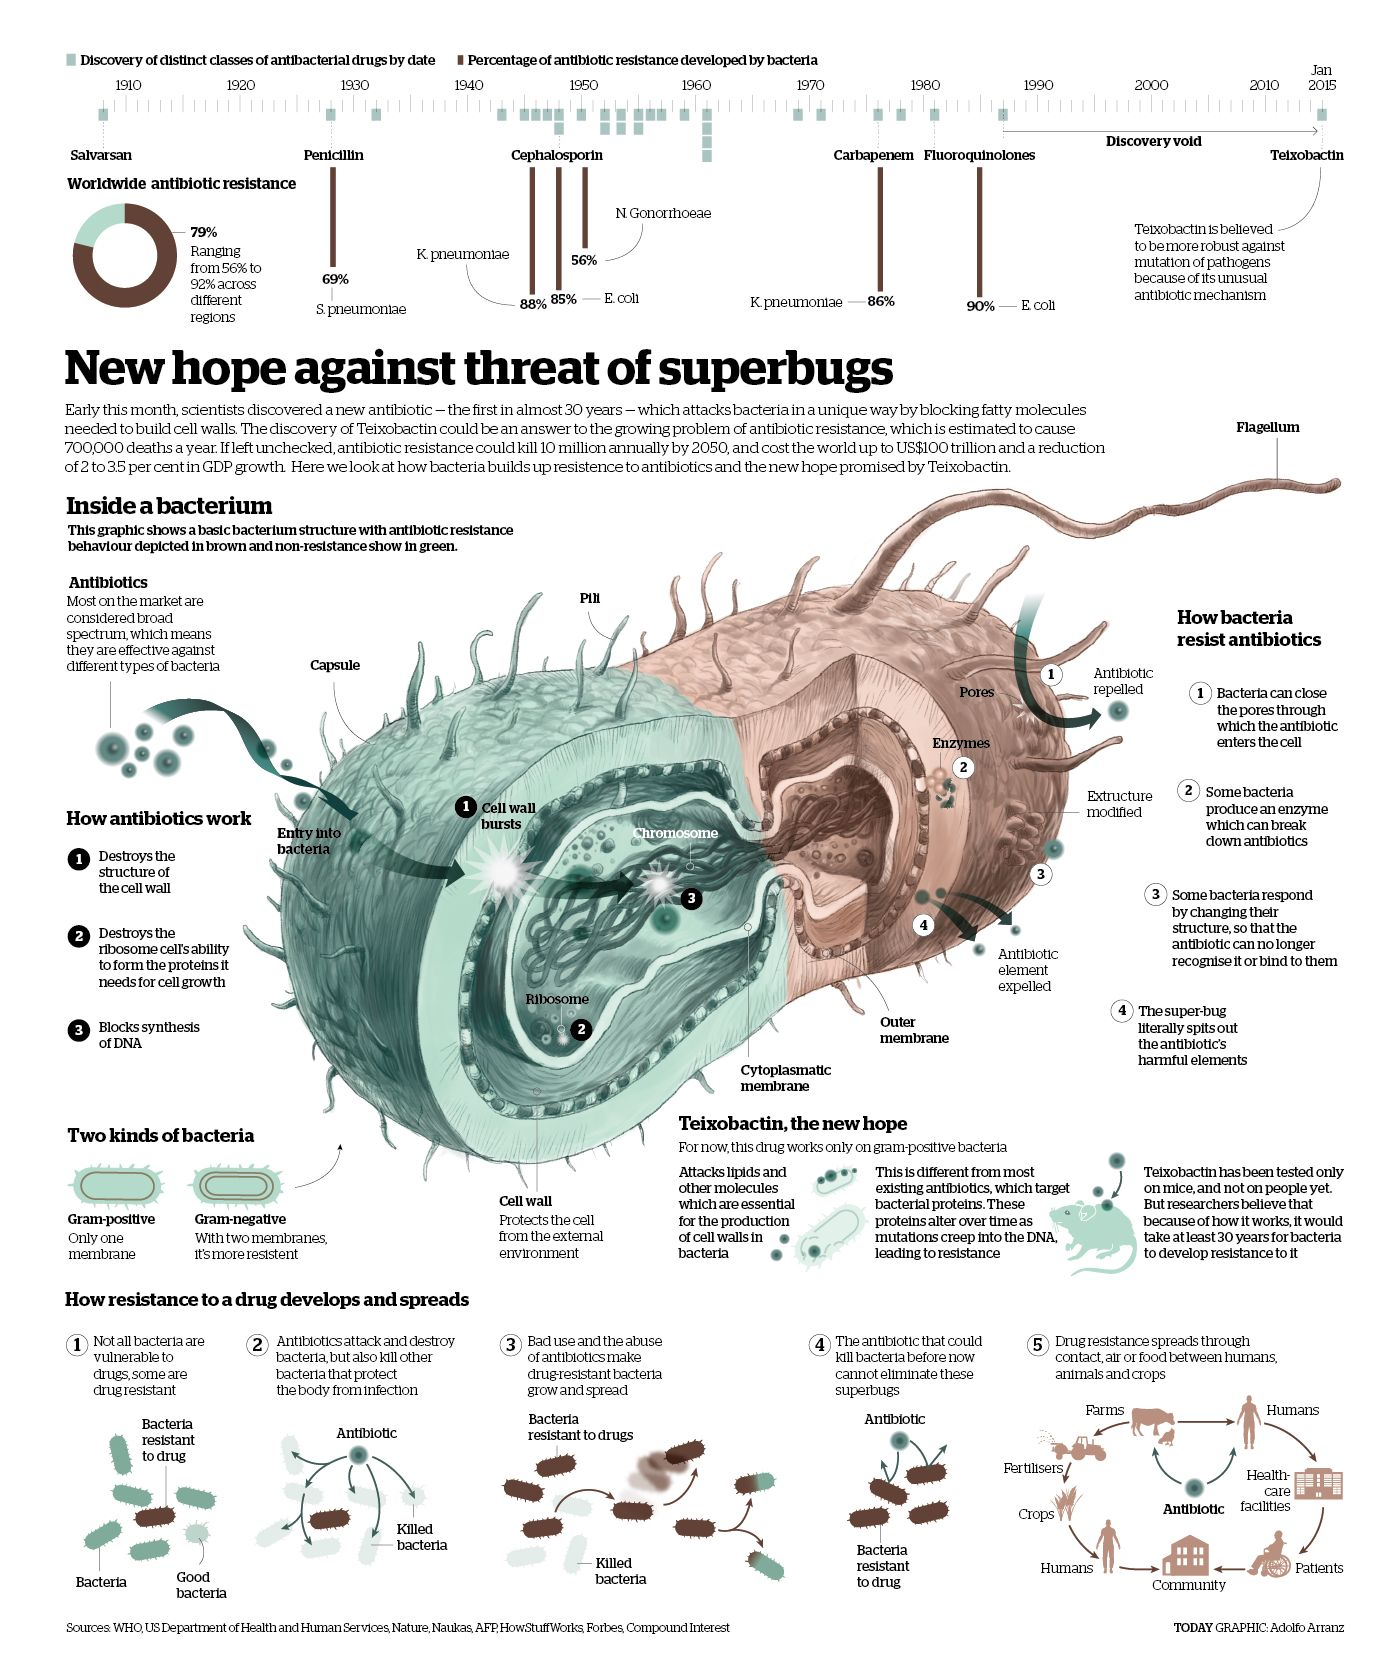 Promising antibiotic discovered in microbial 'dark matter' http://www.nature.com/news/promising-antibiotic-discovered-in-microbial-dark-matter-1.16675?WT.mc_id=TWT_NatureNews